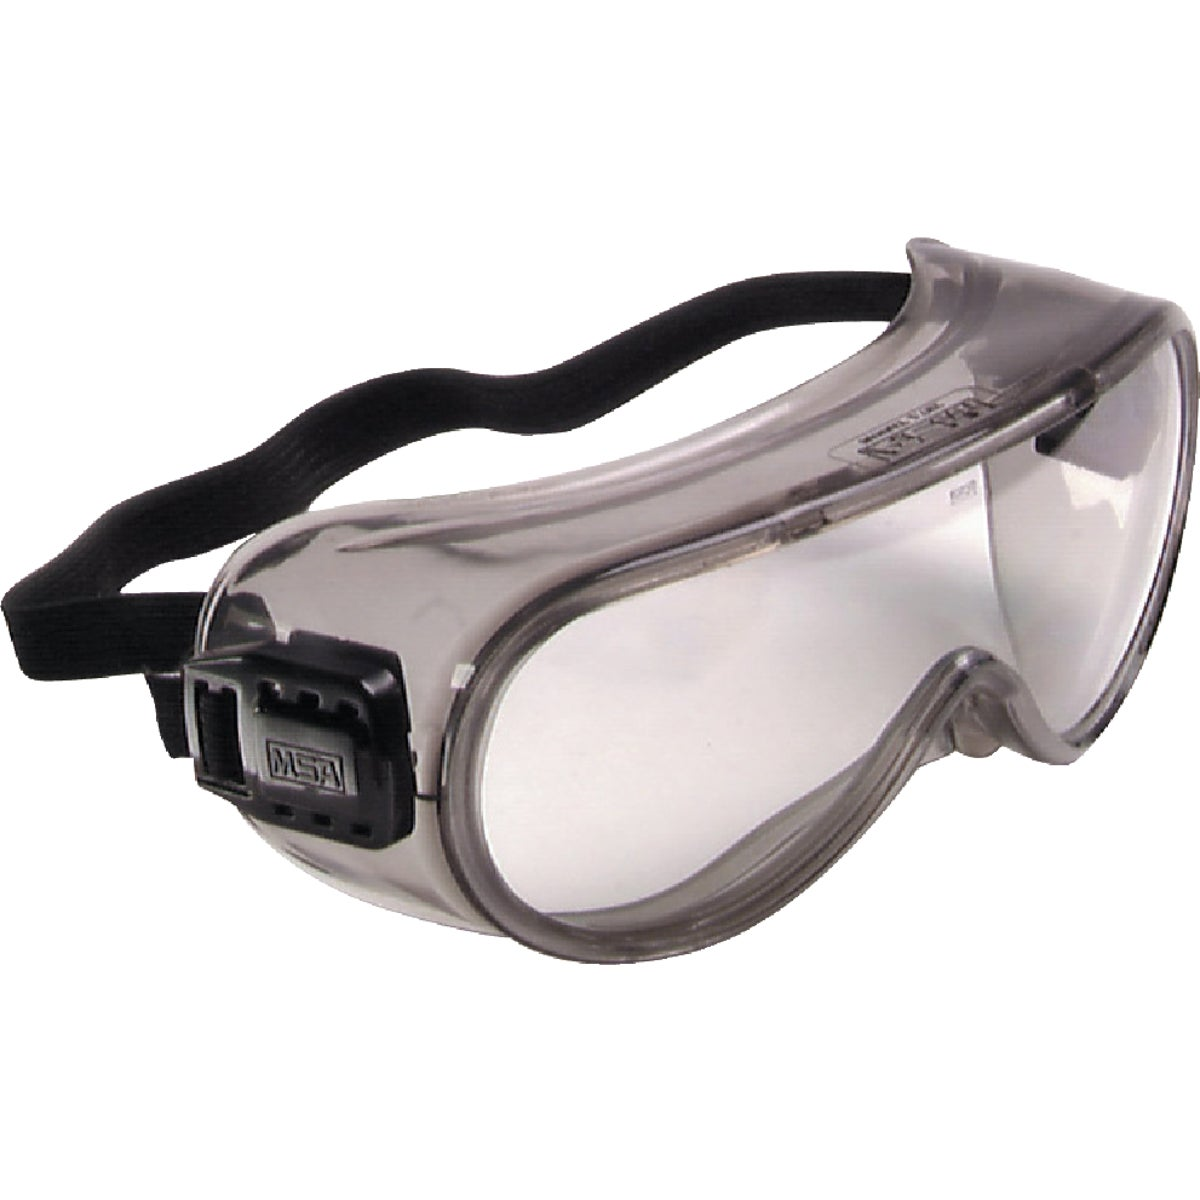 PRO SAFETY GOGGLES - 817698 by Msa Safety